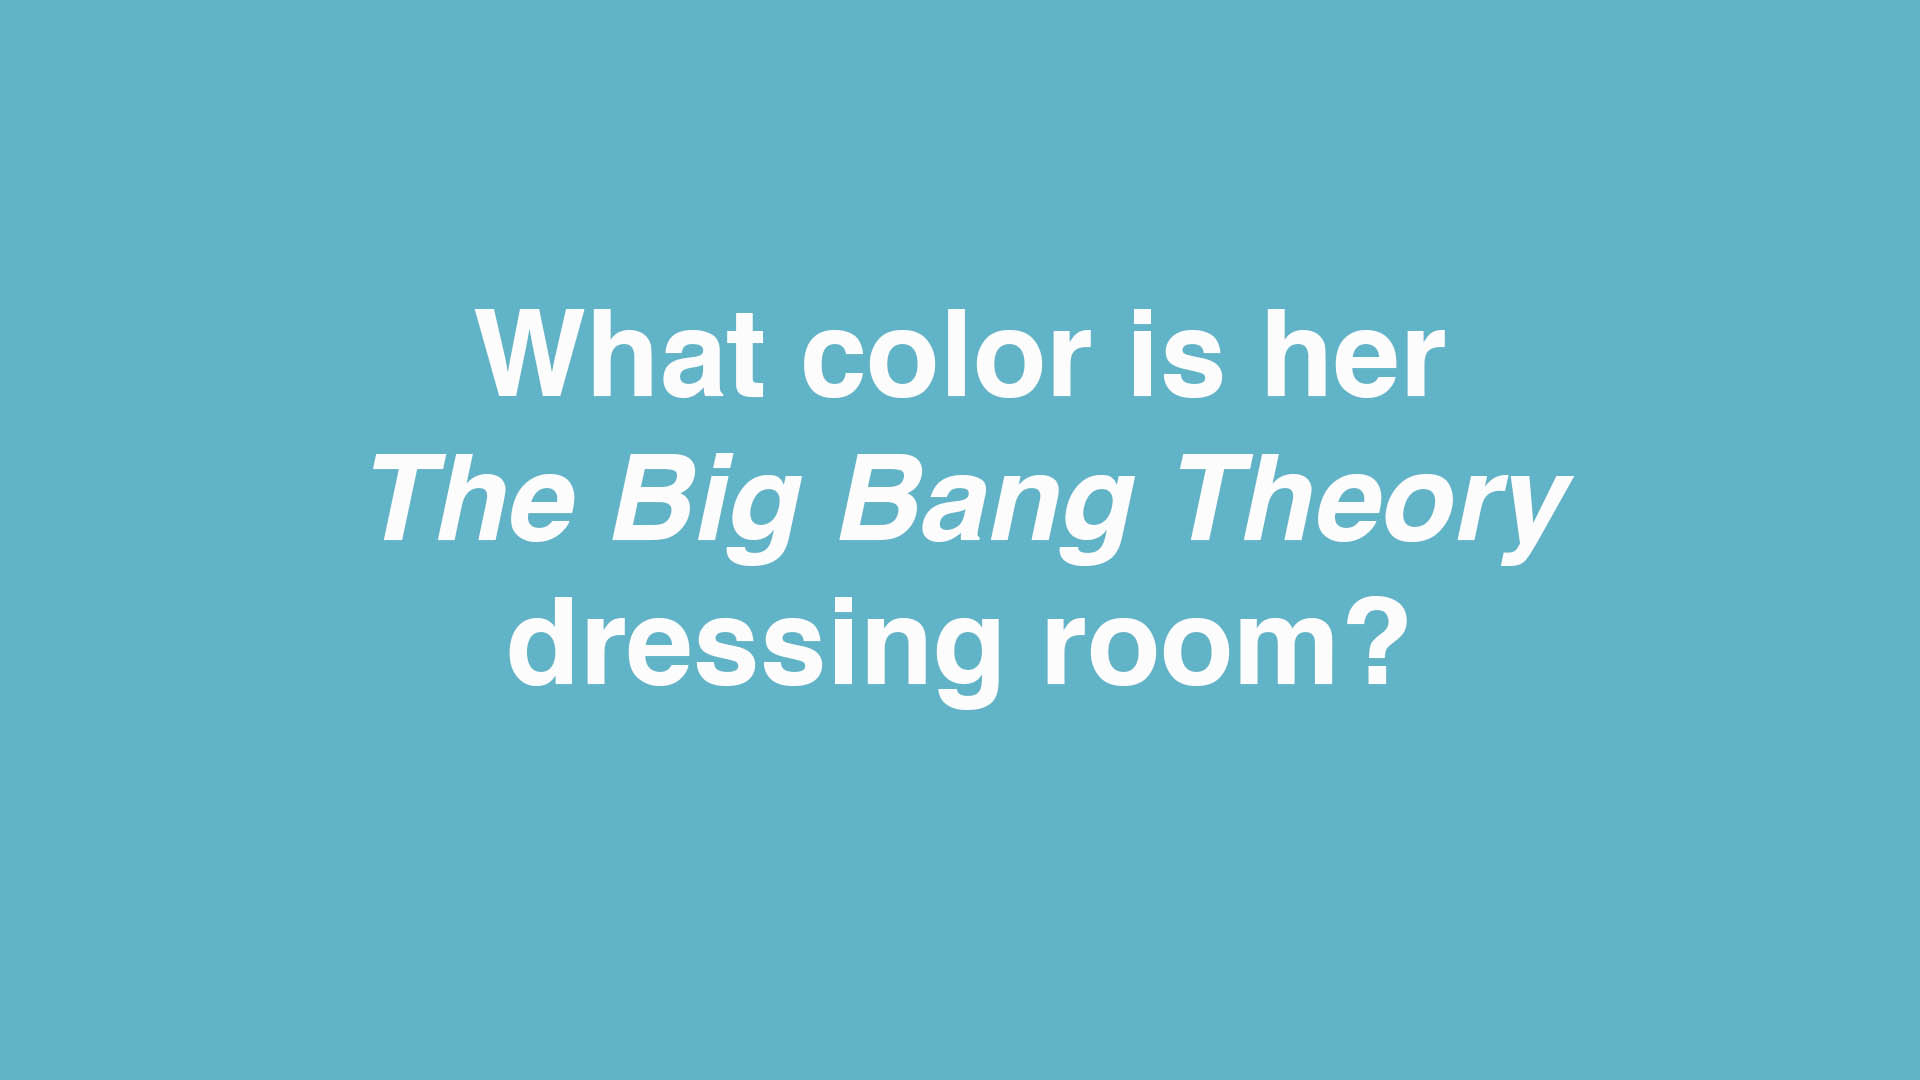 What color is her The Big Bang Theory dressing room?